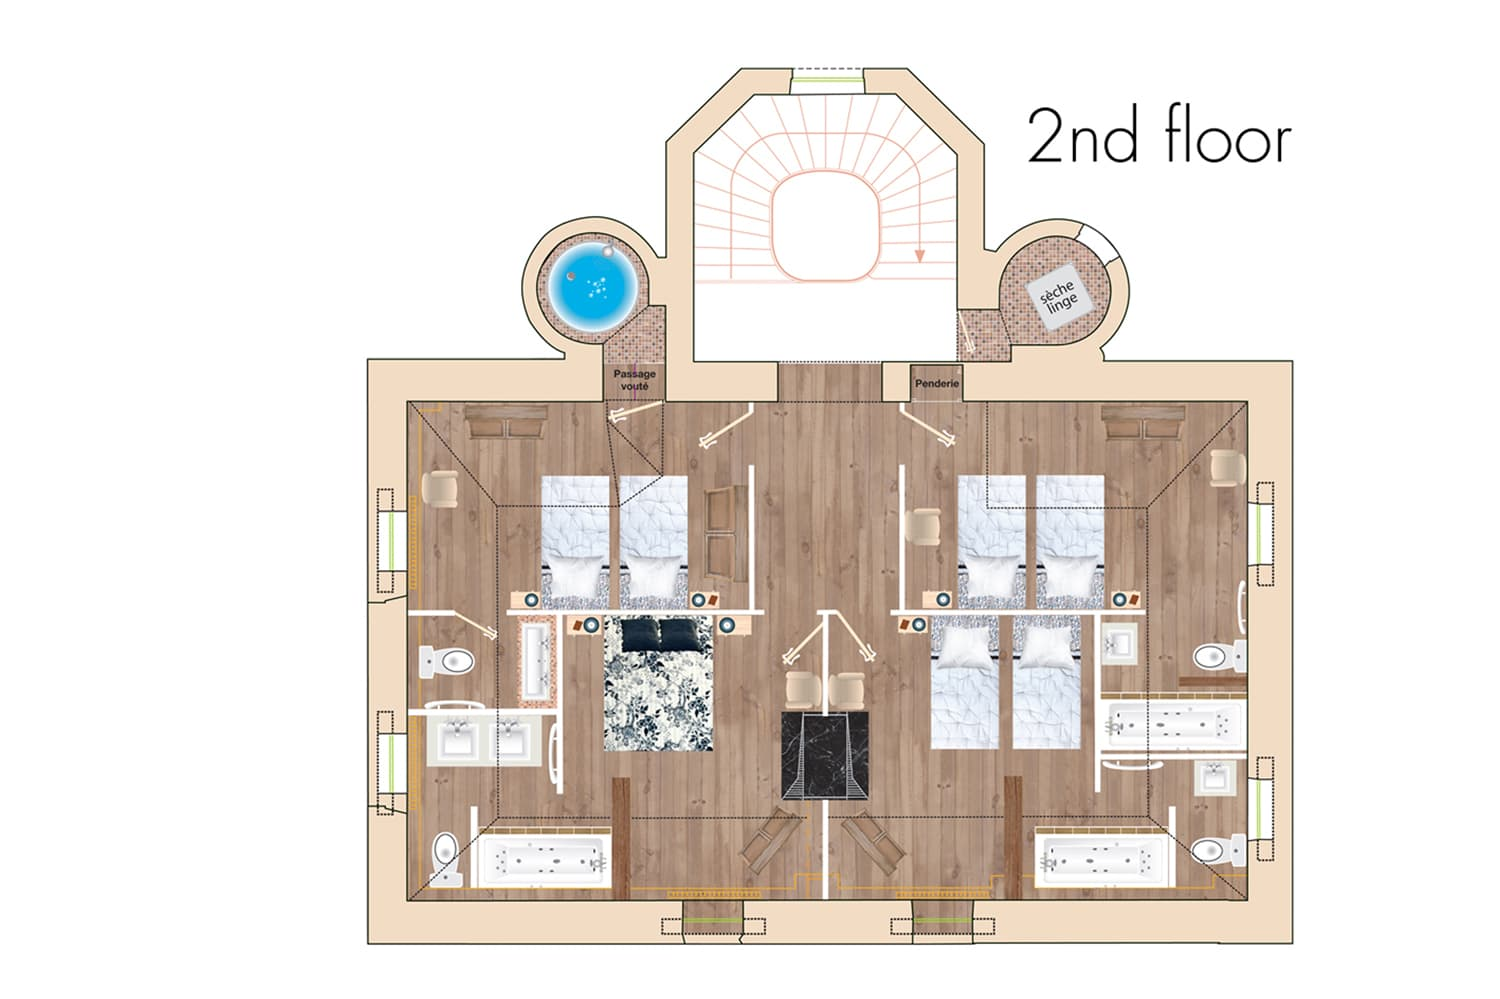 Château Chalons 2nd floor plans